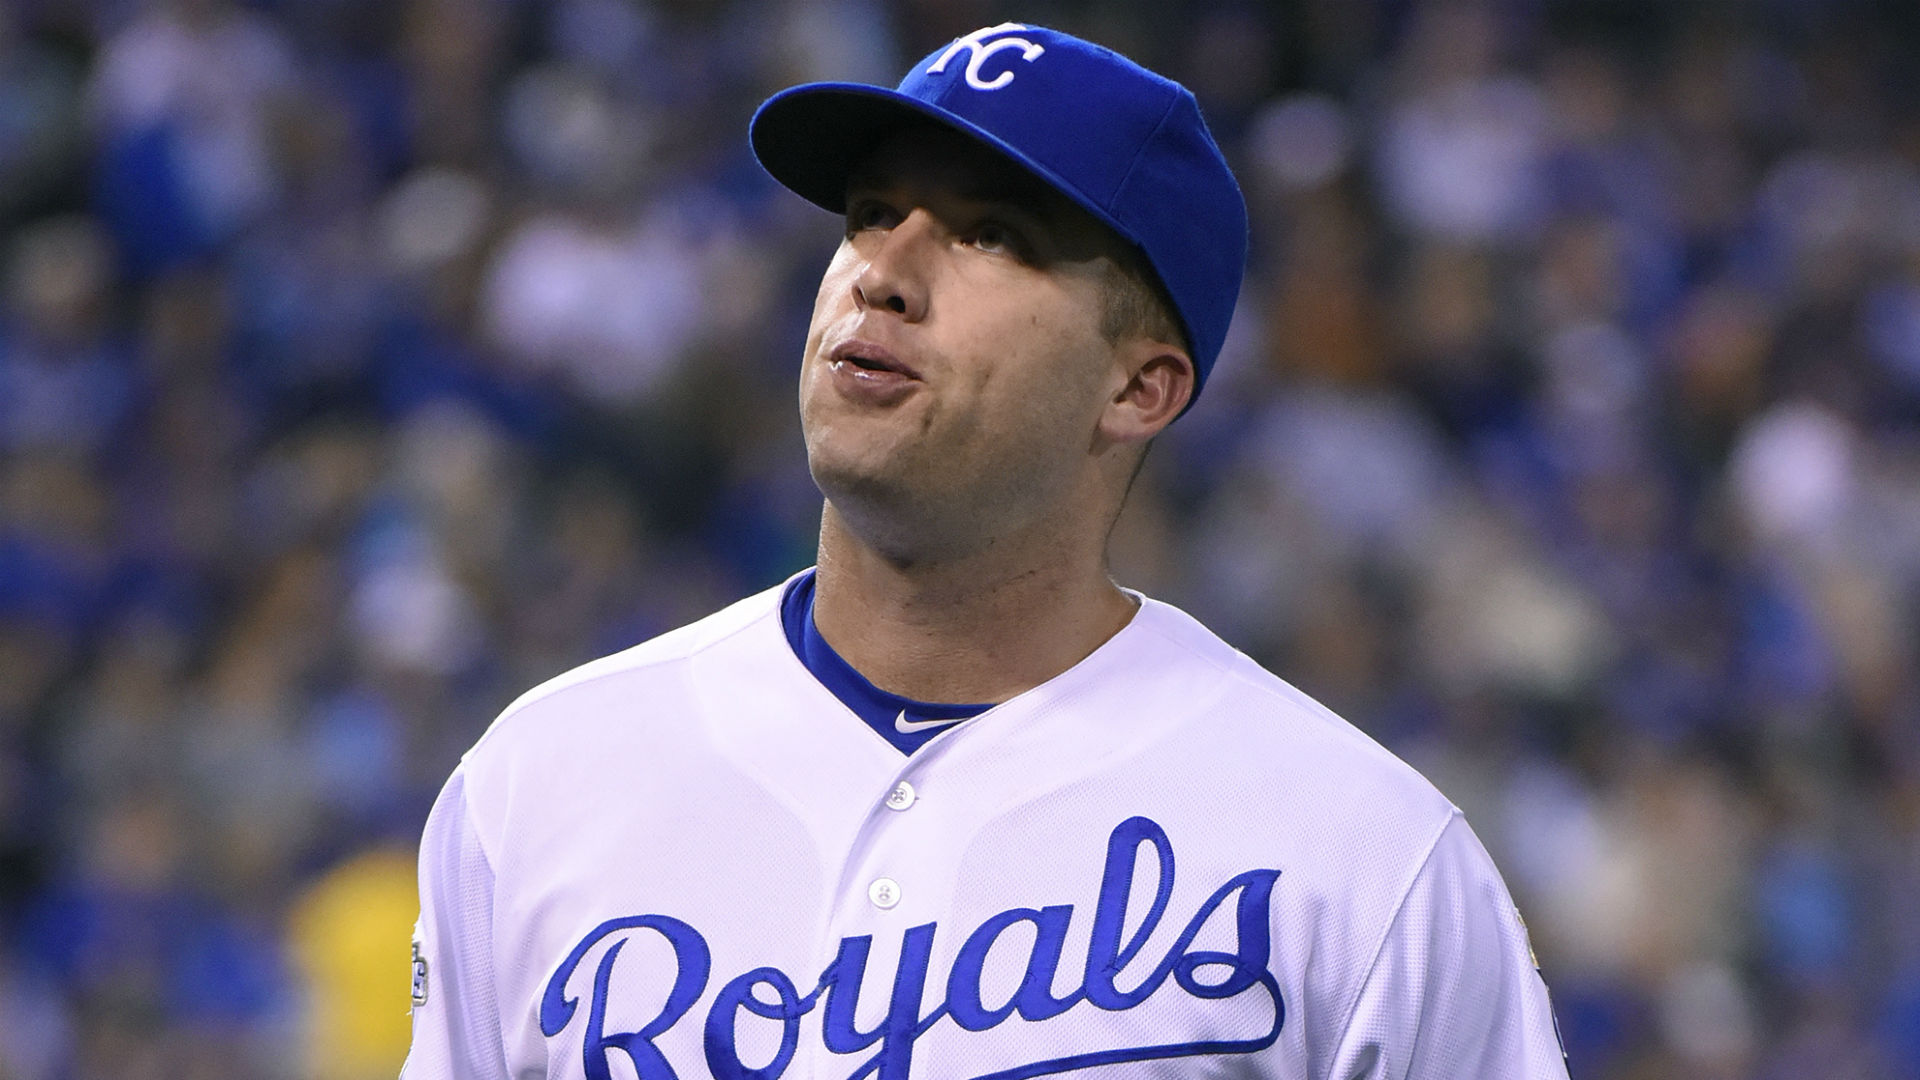 Royals Pitcher Danny Duffy charged with DUI after Sunday incident